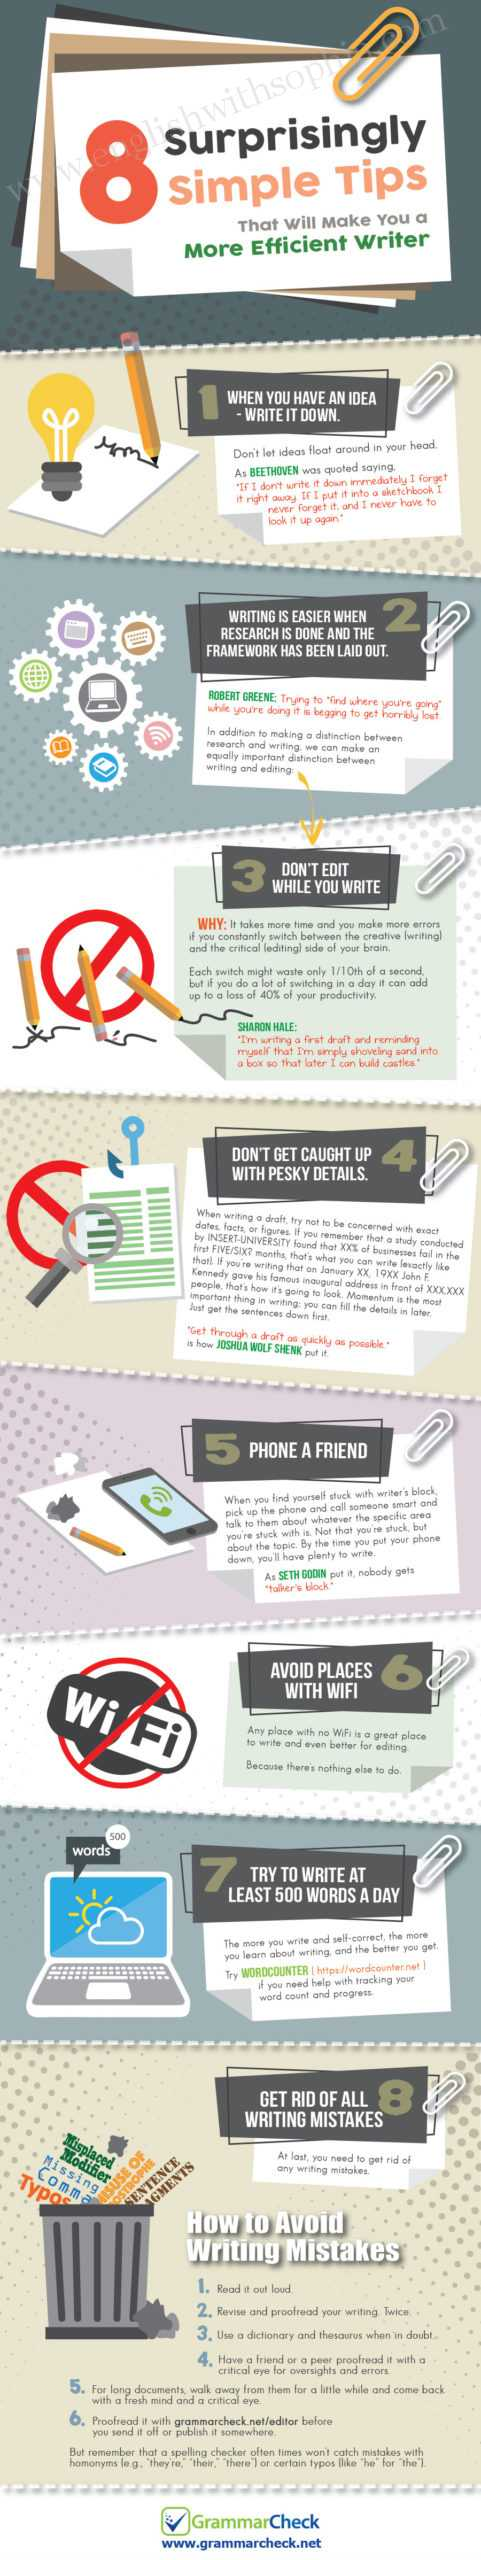 Clear Writing Tips to Make you More Efficient